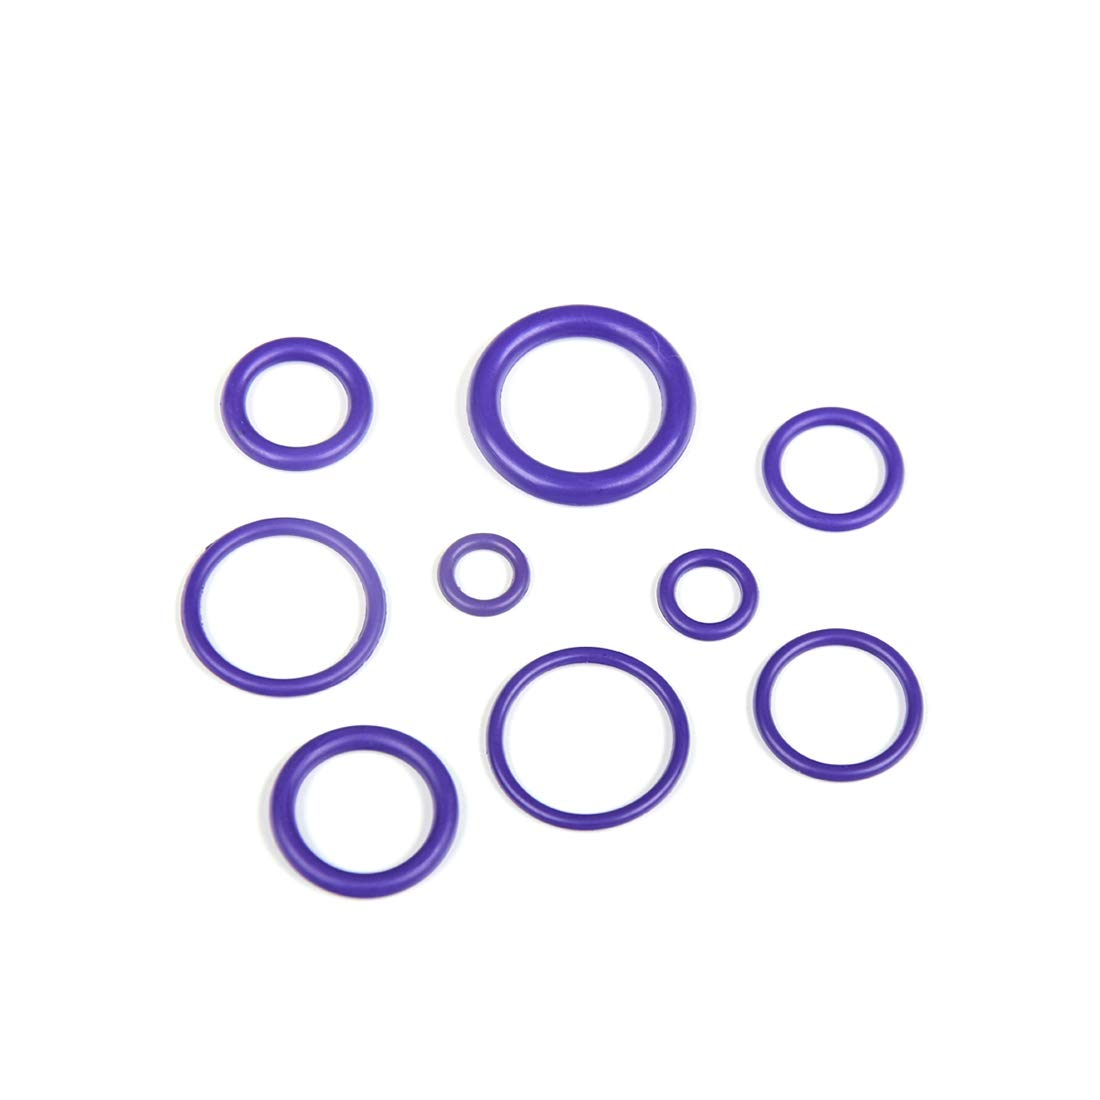 270Pcs 18 Popular Sizes Purple O-Ring Assortment Rubber Keyboard Dampeners with Plastic Storage Box for Seals Air Conditioning Car Auto Vehicle Repair 9MM-20MM